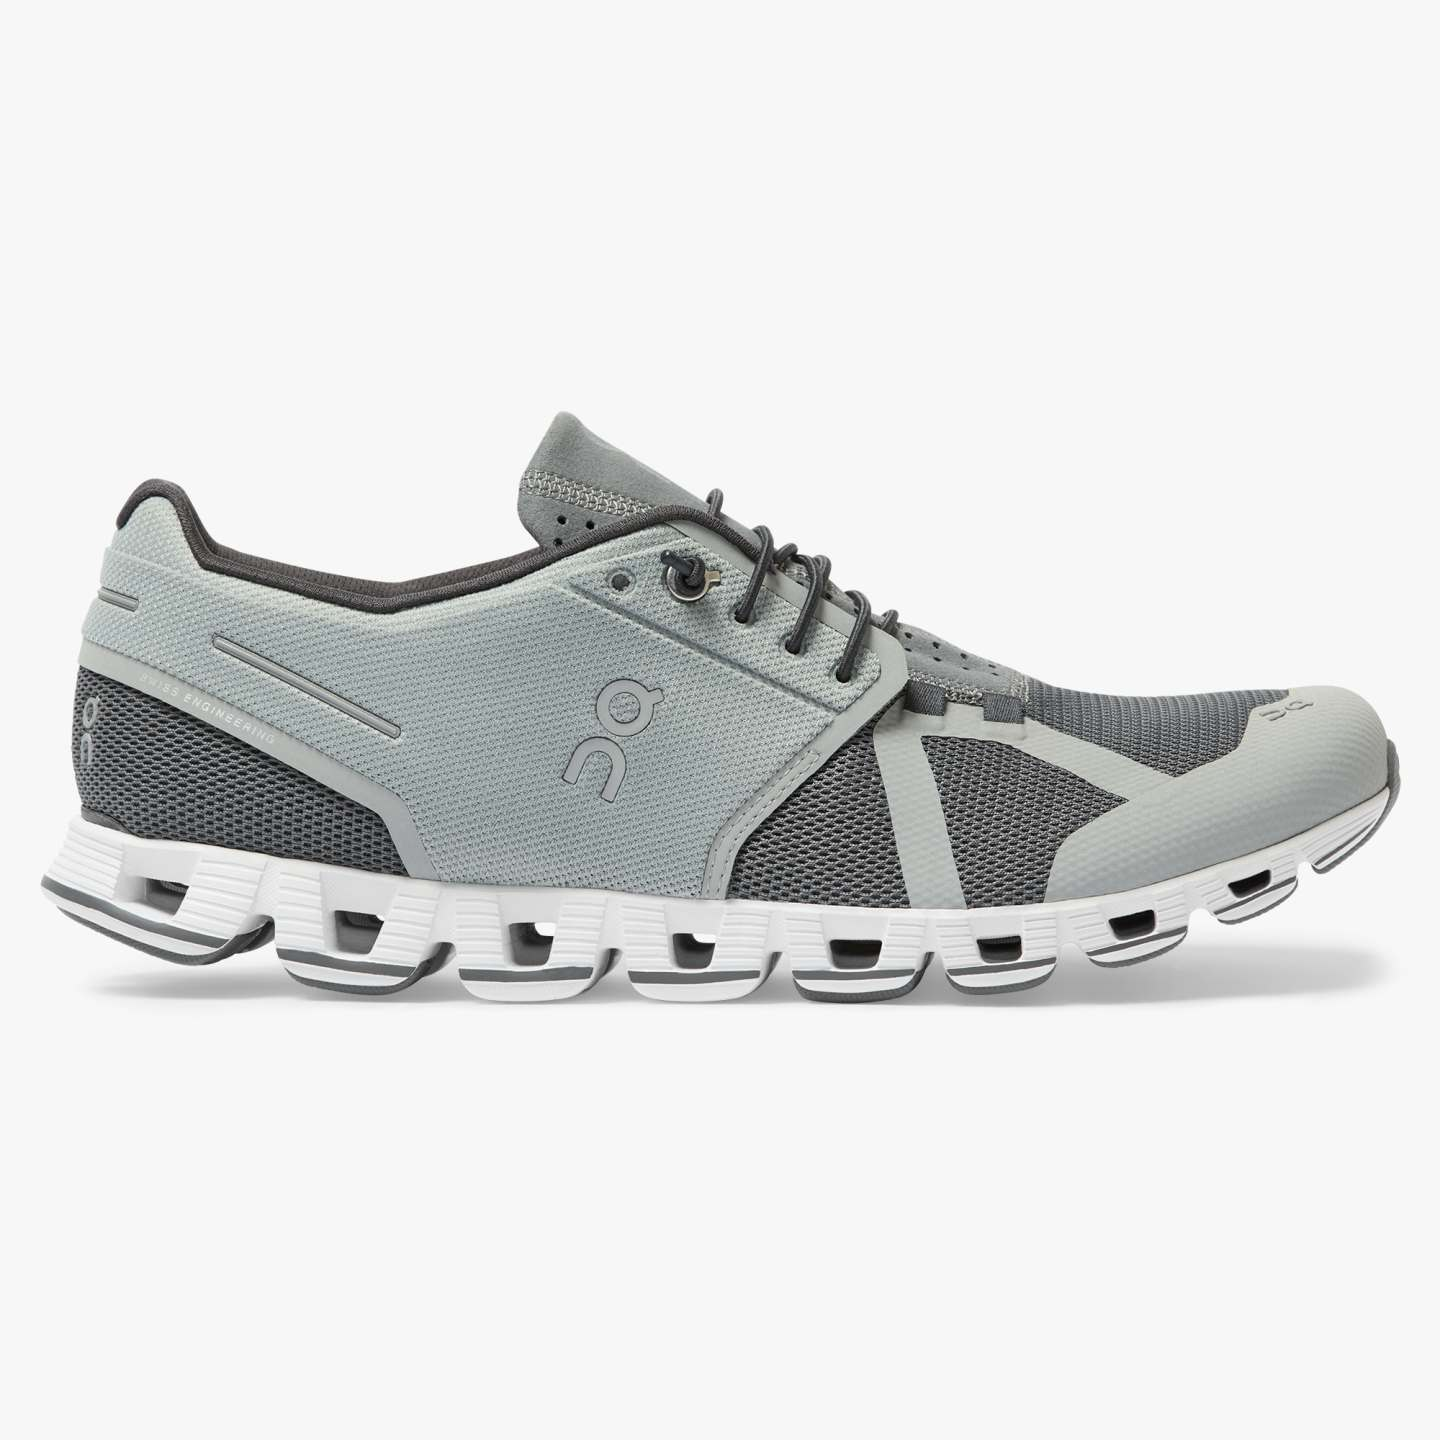 low priced for whole family coupon code Cloud - the lightweight shoe for everyday performance | On